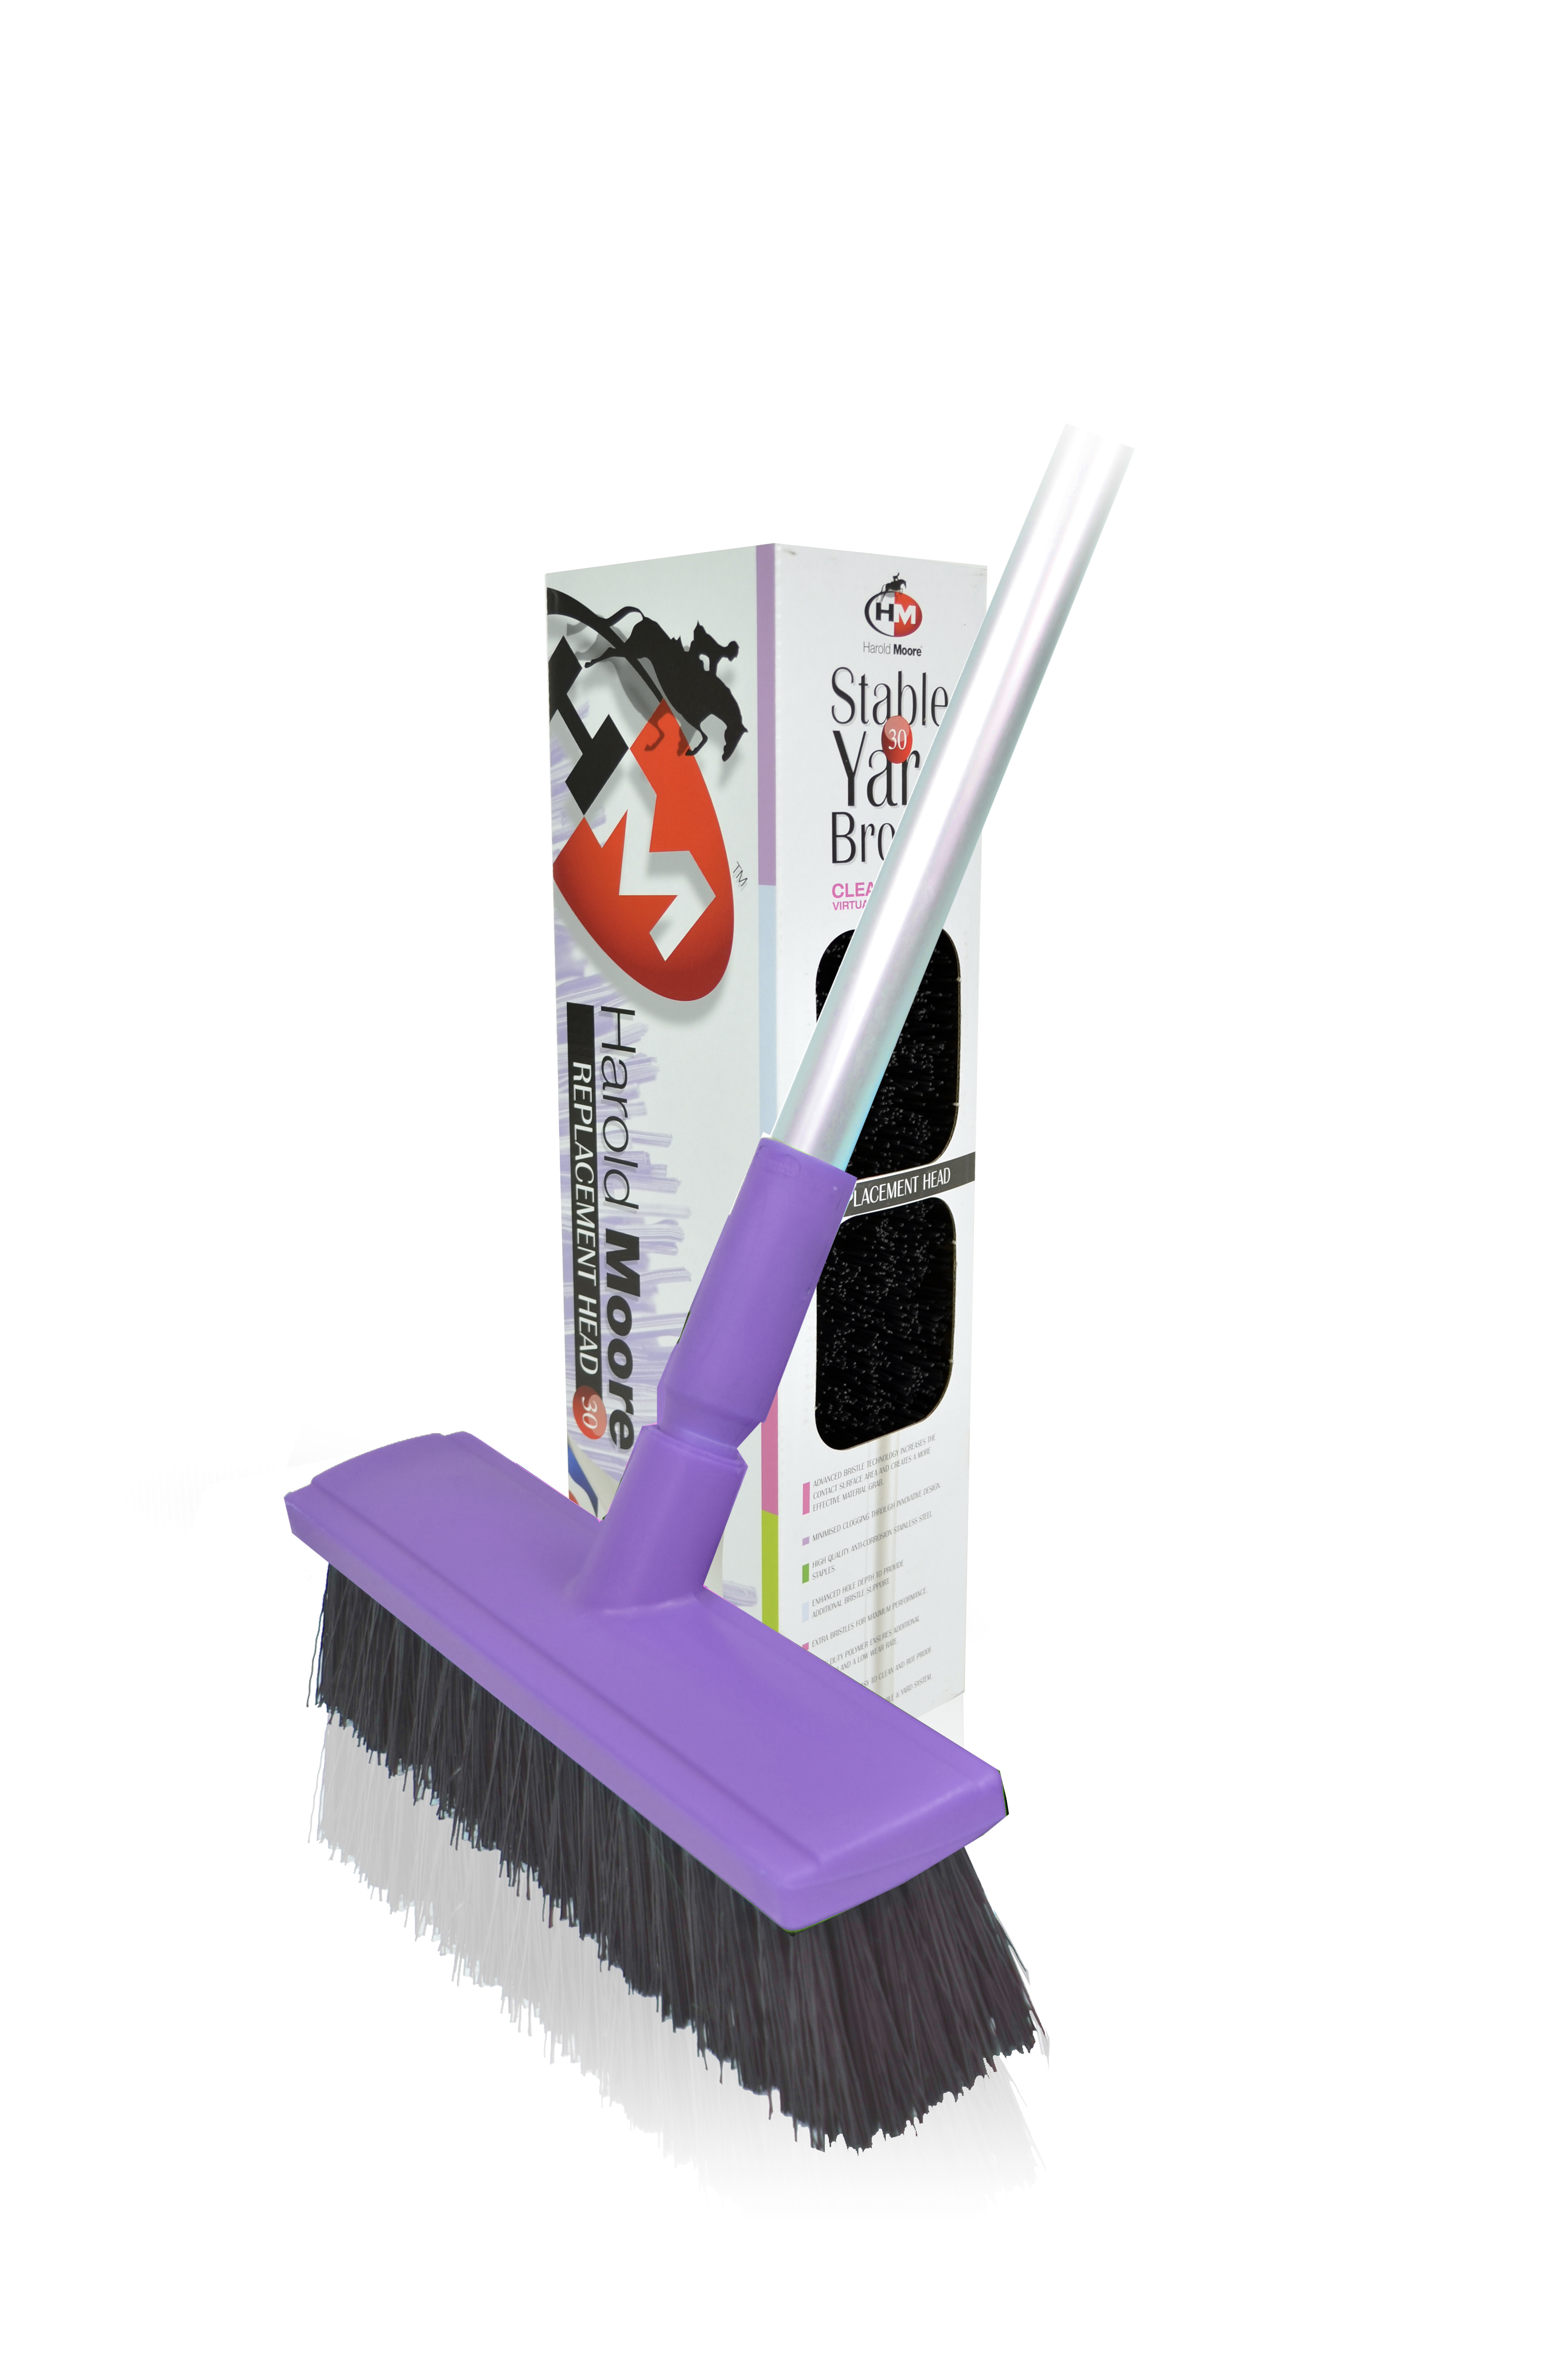 Wholesalers of Brushes and Brooms - Tony Mitchell LTD